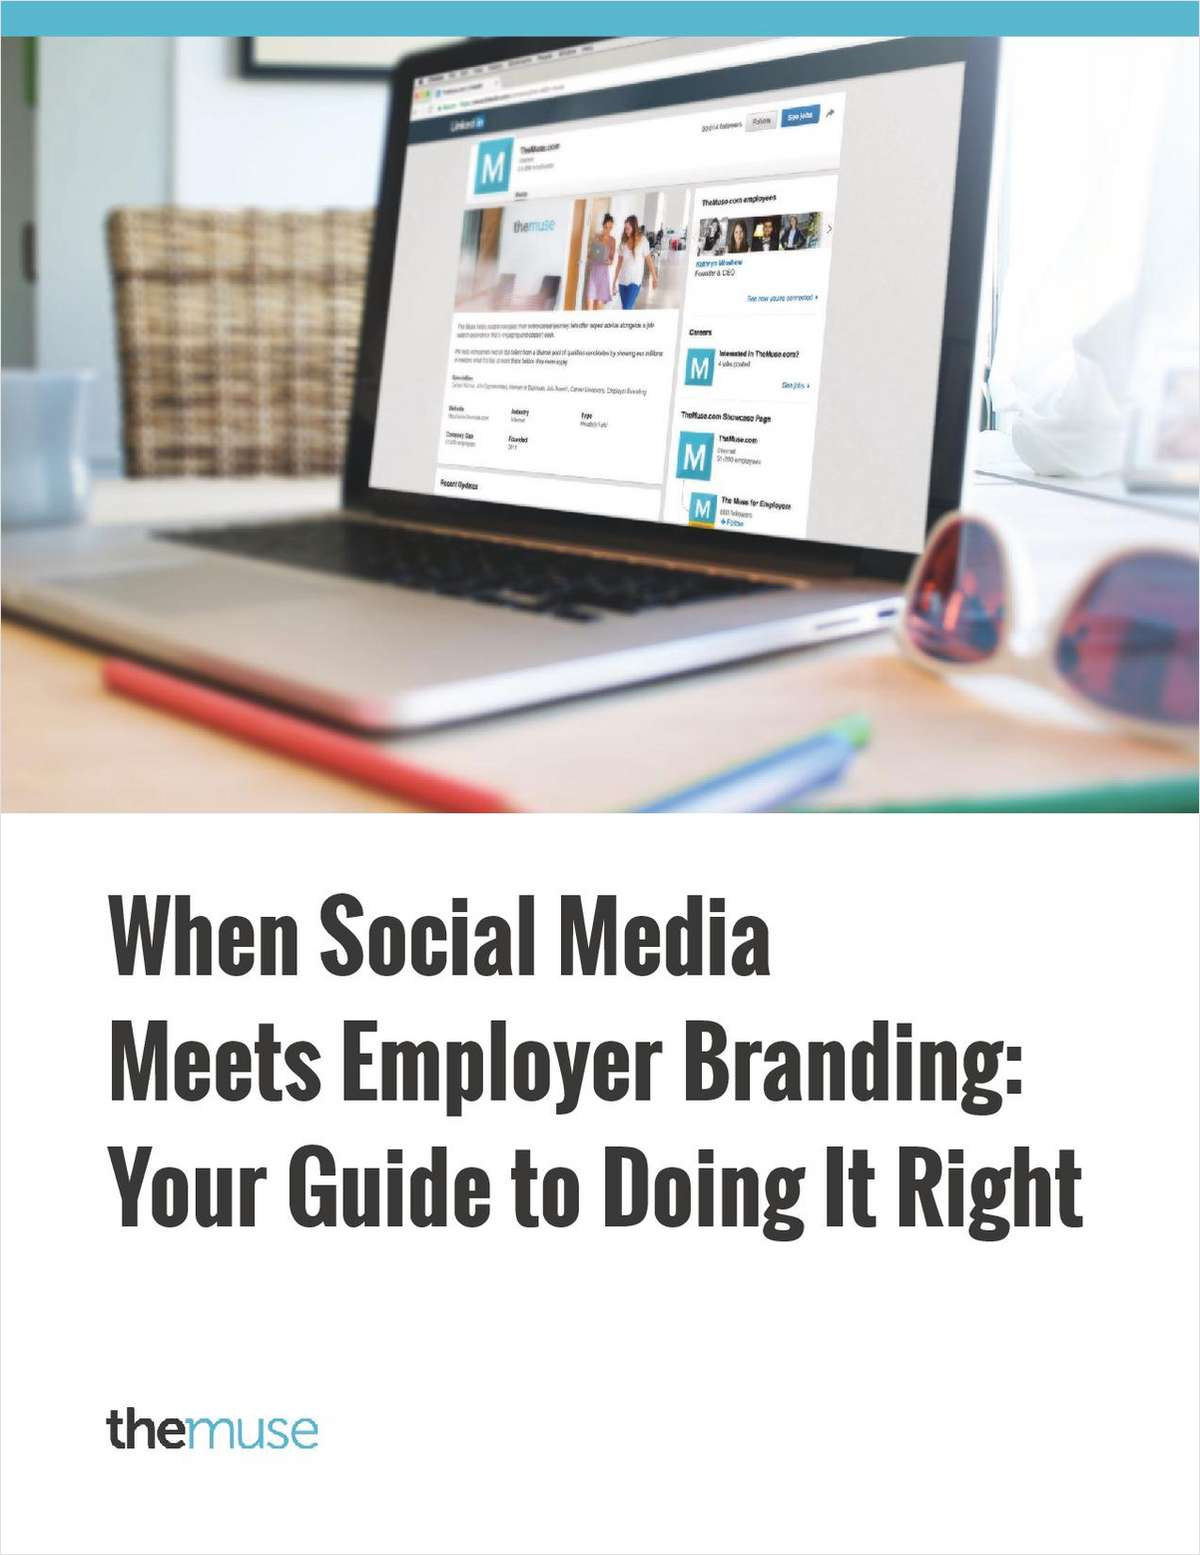 When Social Media Meets Employment Branding: Your Guide to Doing it Right